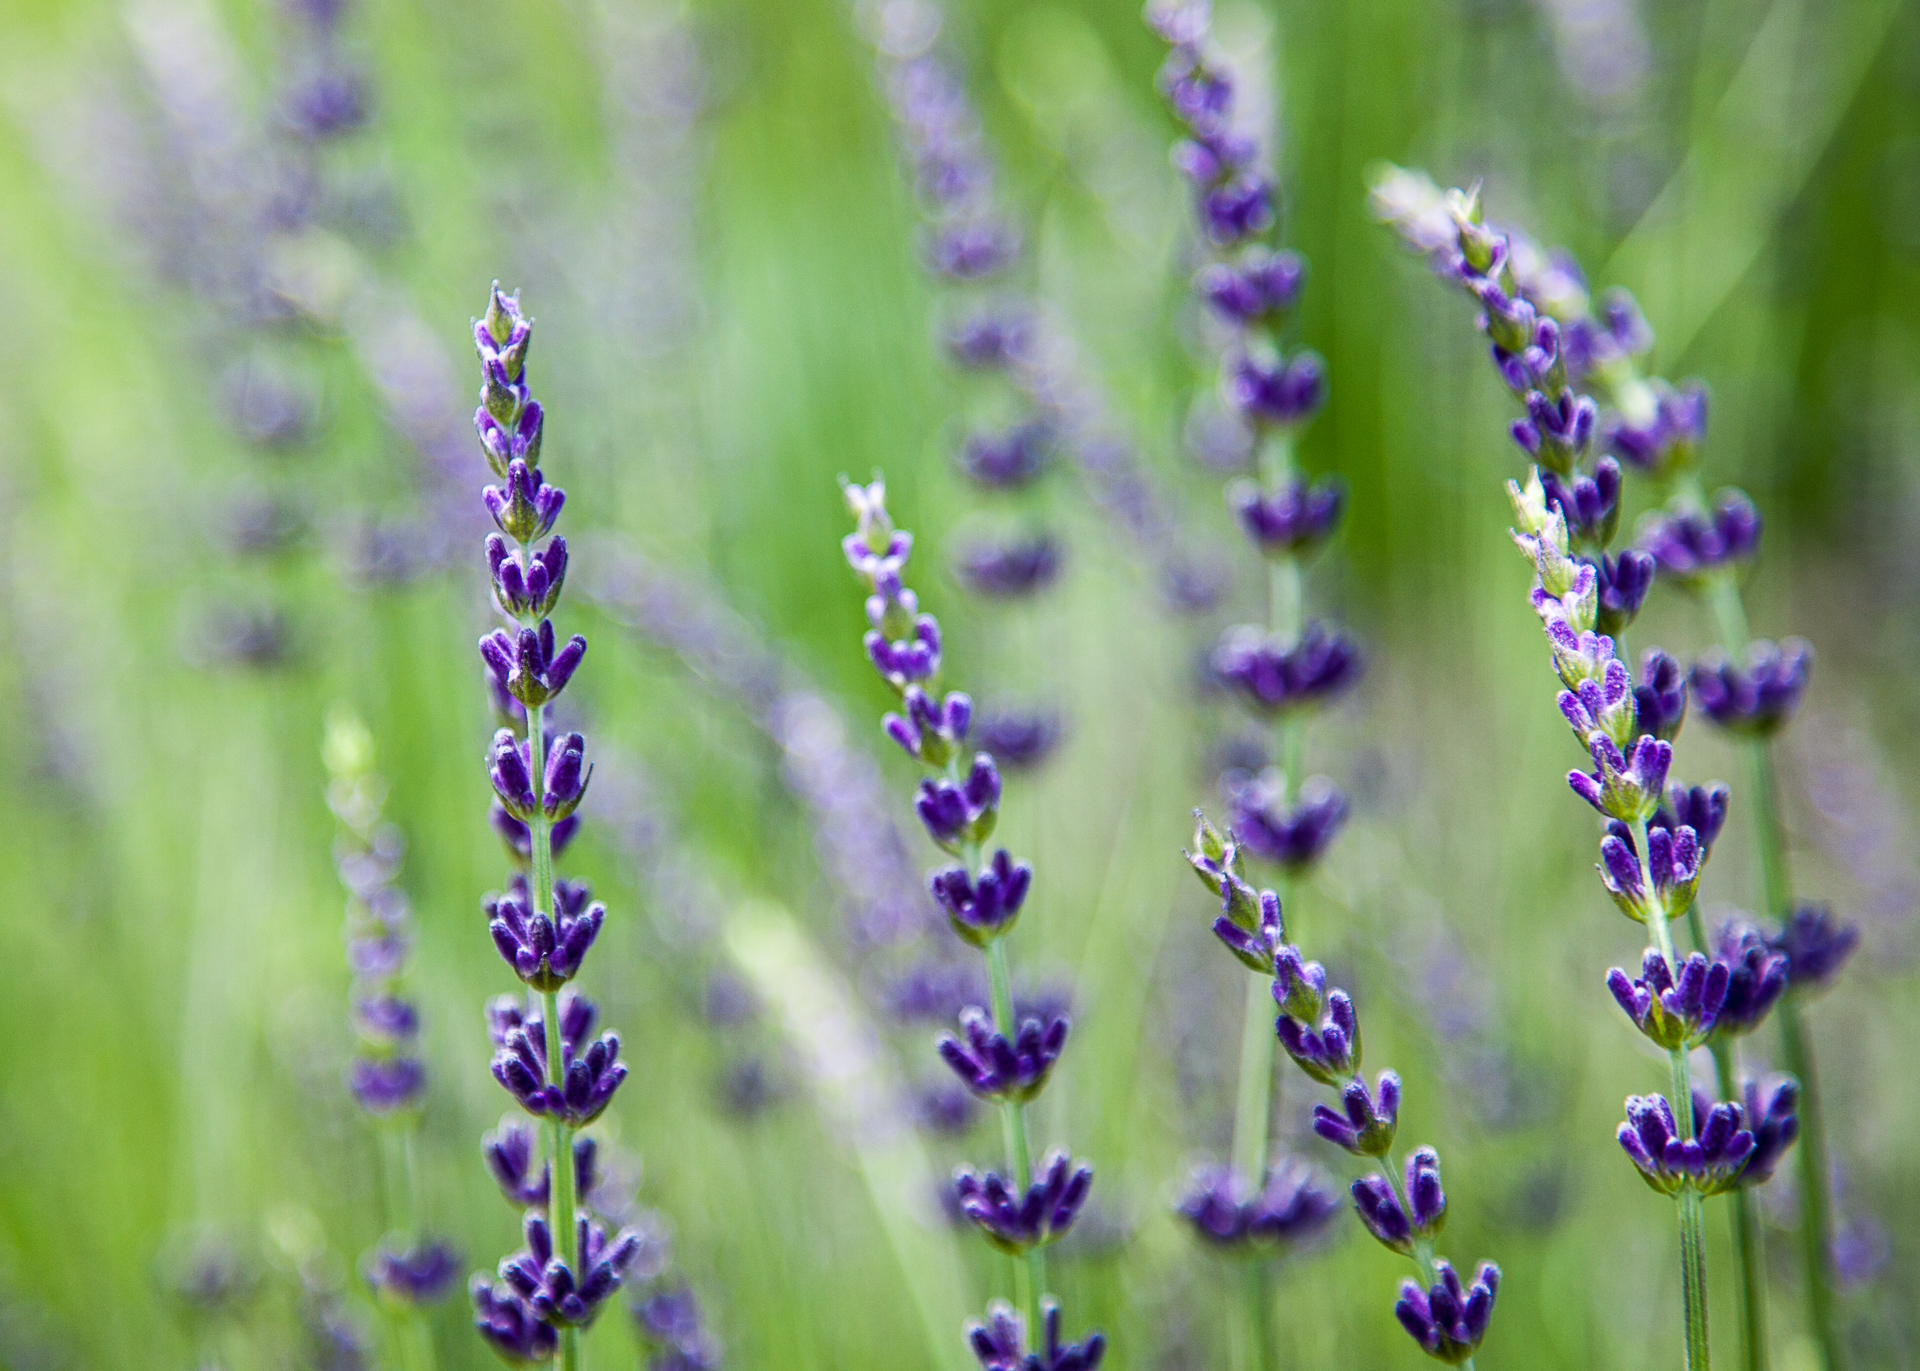 Some more close-ups of the lavender.